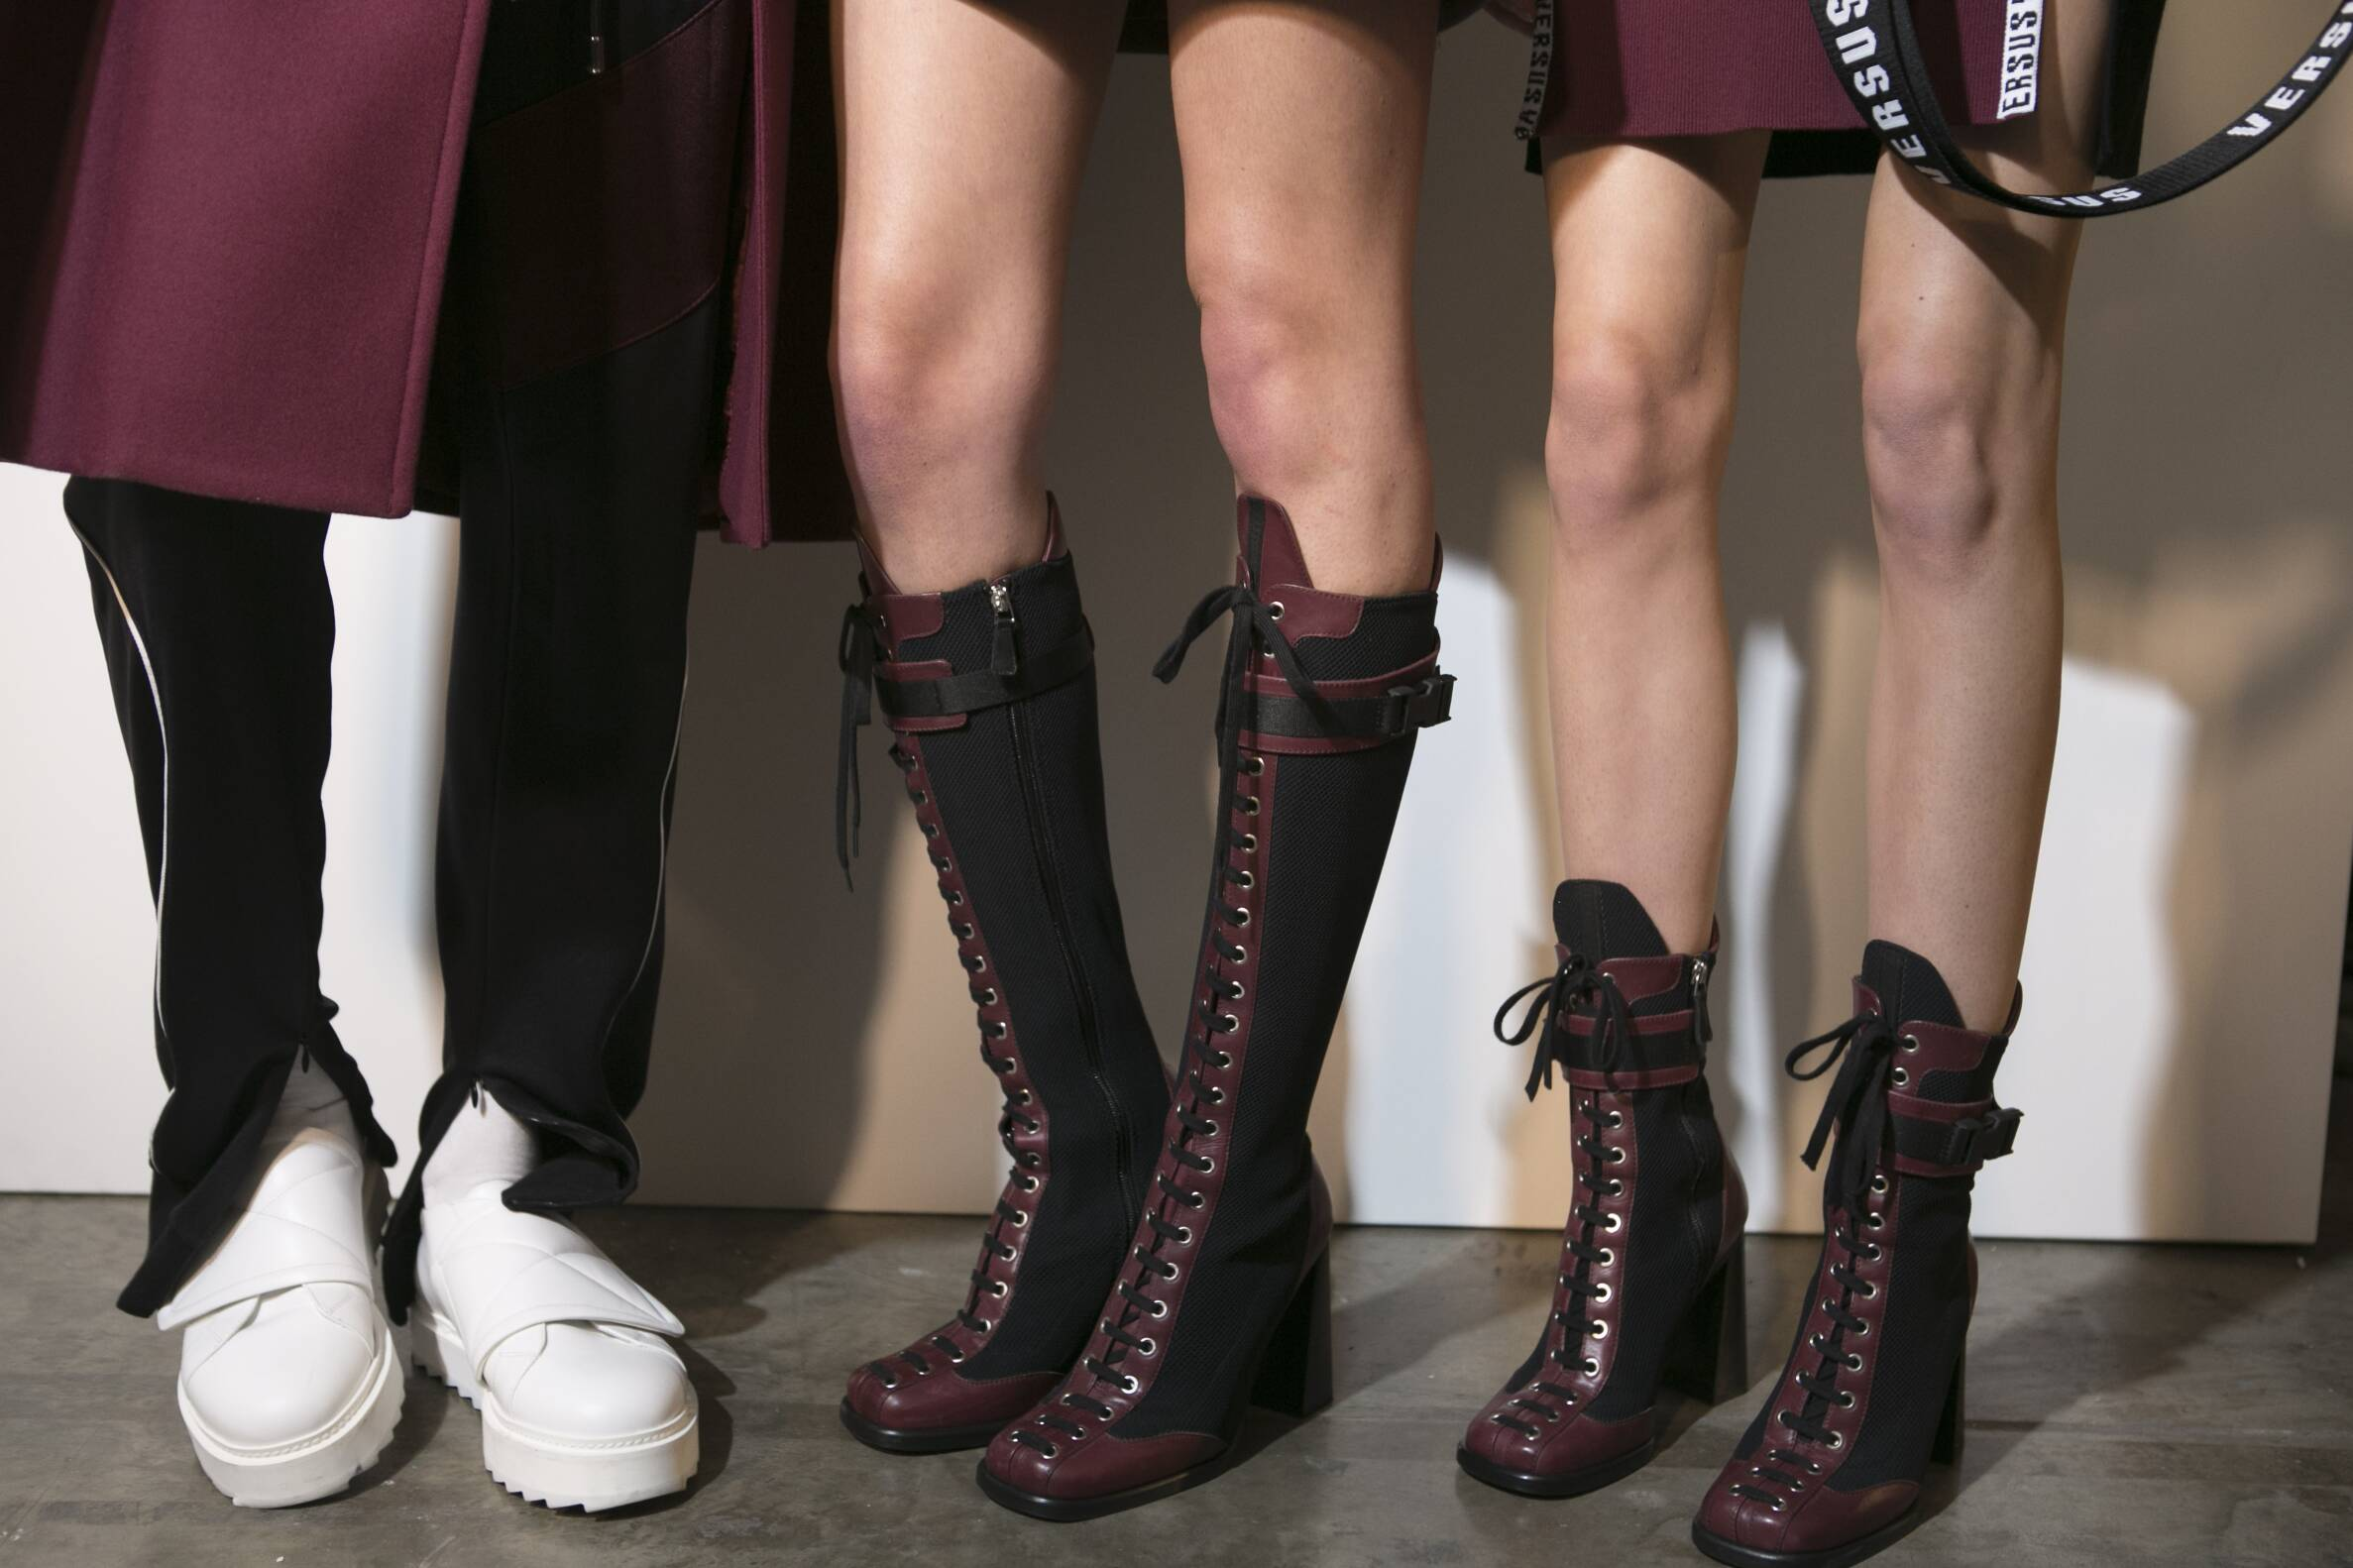 Versus Versace Backstage Fashion Models Shoes Details